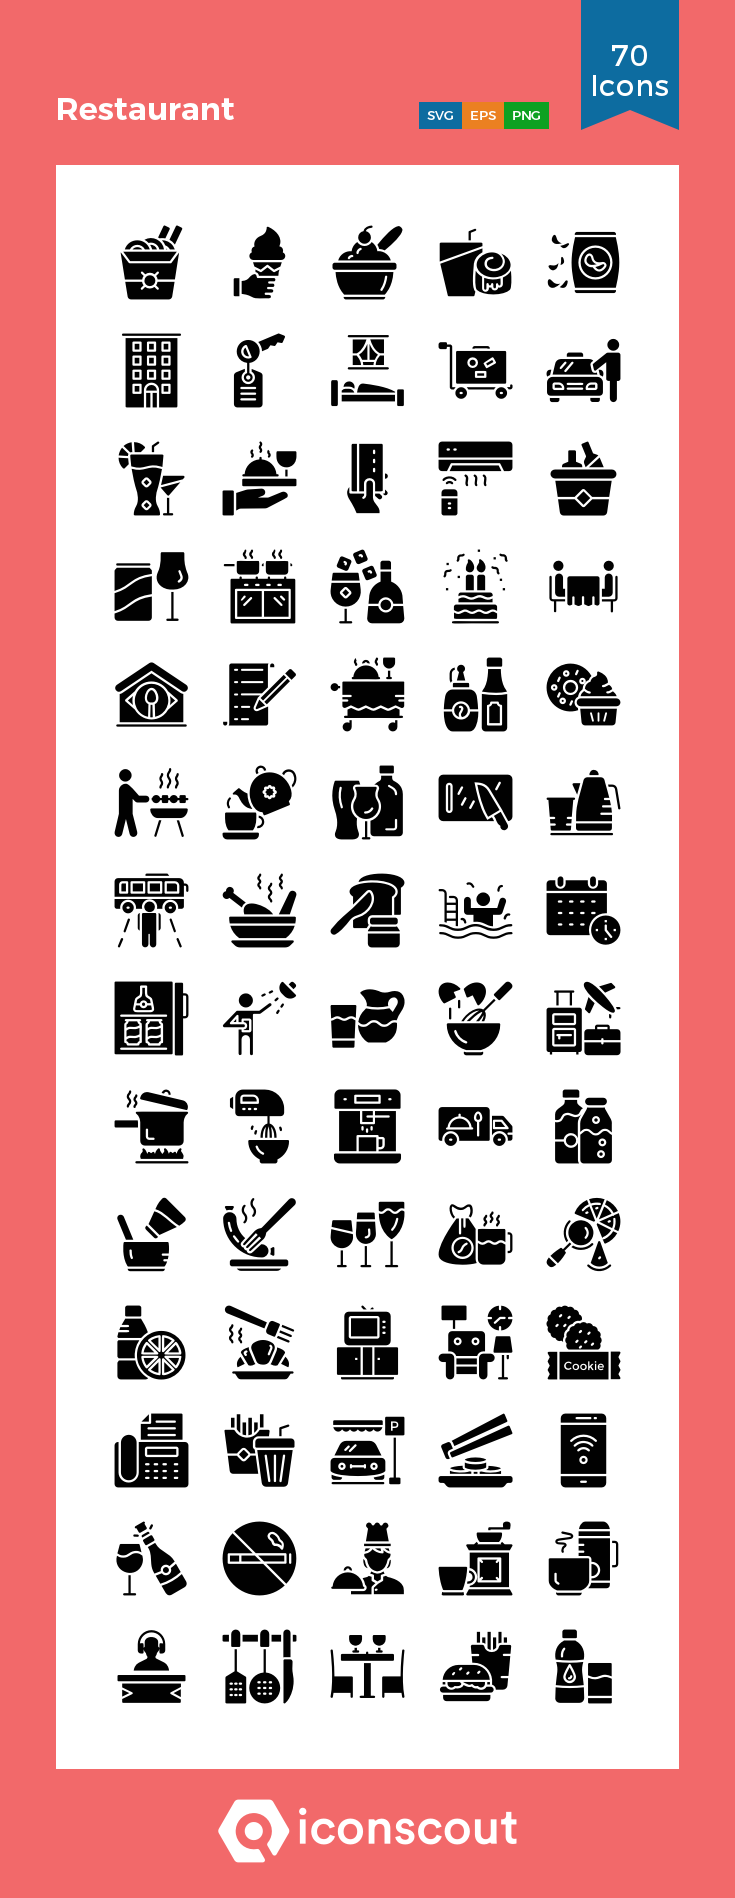 Download Restaurant Icon Pack Available In Svg Png Eps Ai Icon Fonts Glyph Icon Icon Marketing Icon